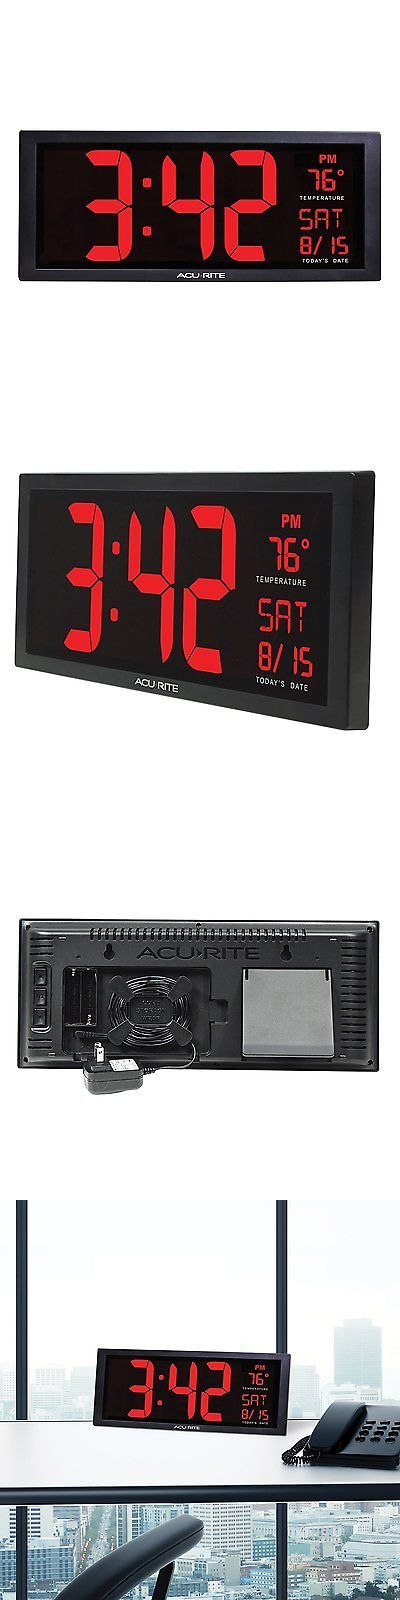 Alarm Clocks 79643: Large Digital Led Wall Clock Temperature Table Memory Big Extra Oversize Date -> BUY IT NOW ONLY: $48.78 on eBay!